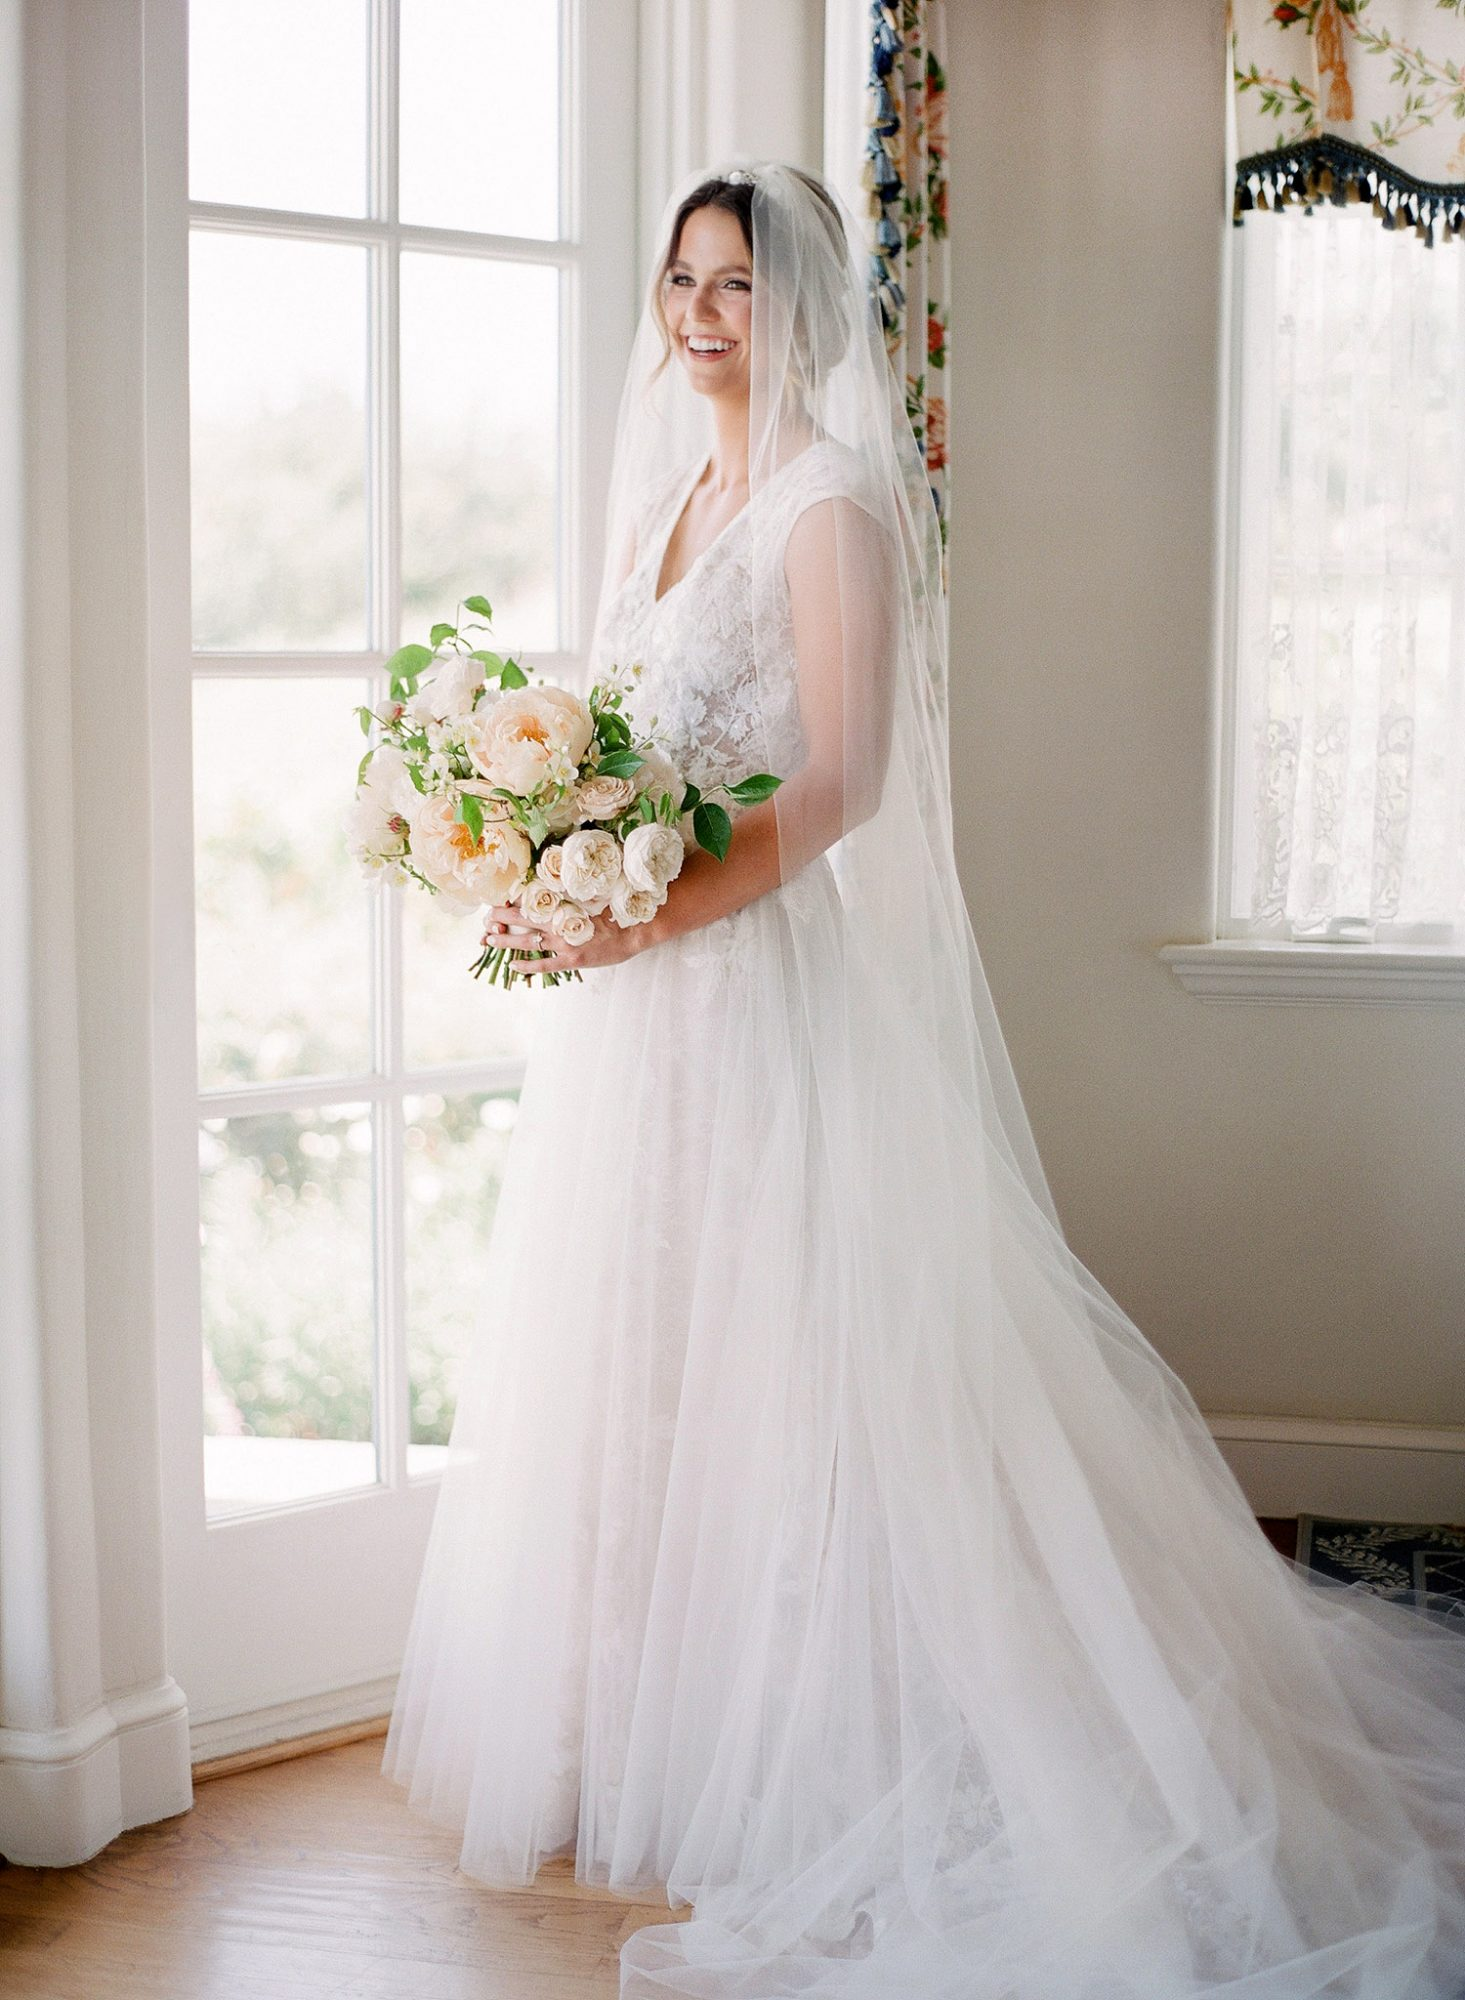 tamara erik wedding bride veil bouquet